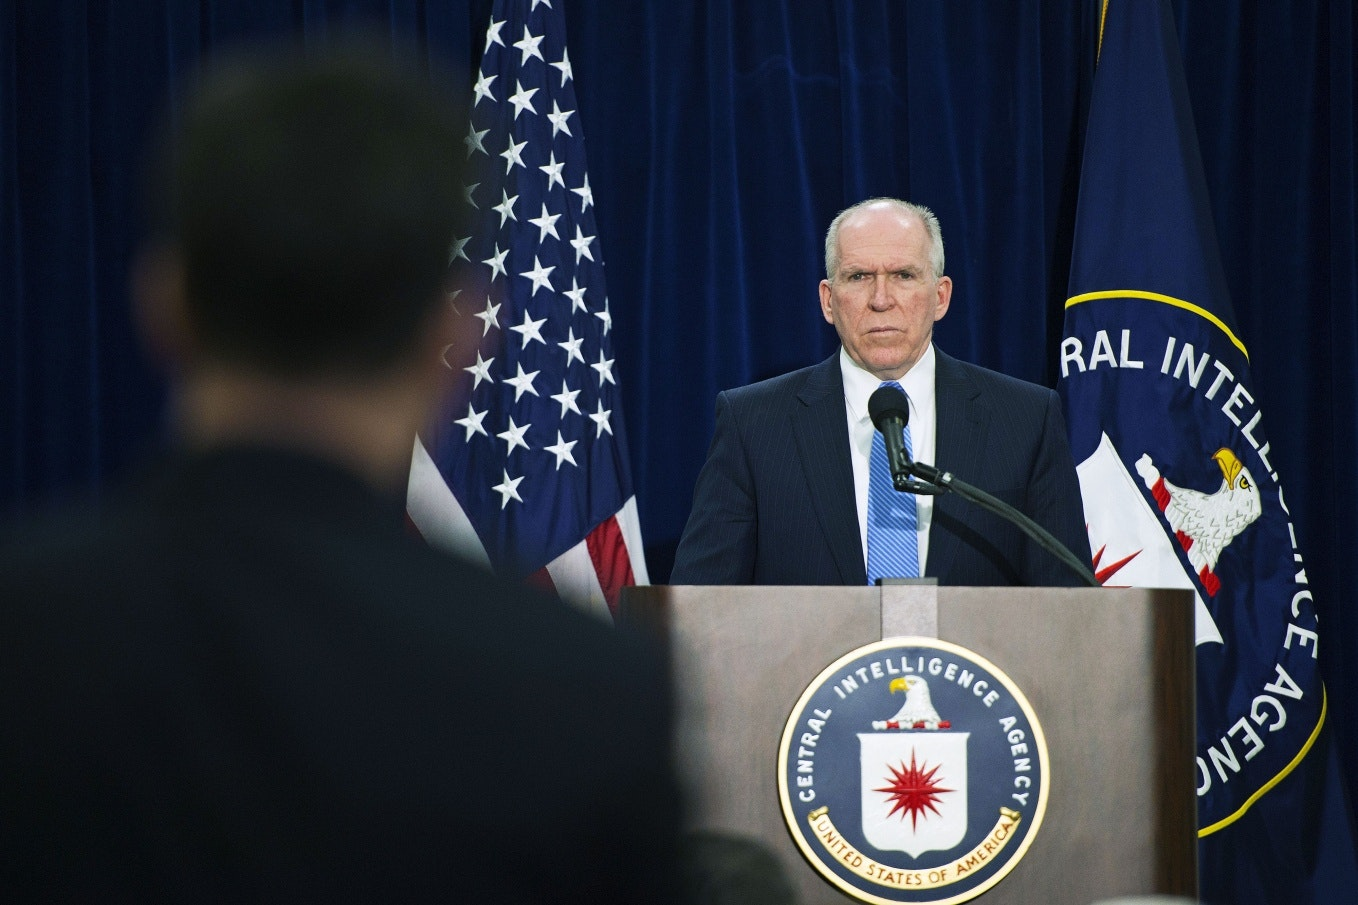 John Brennan at a podium